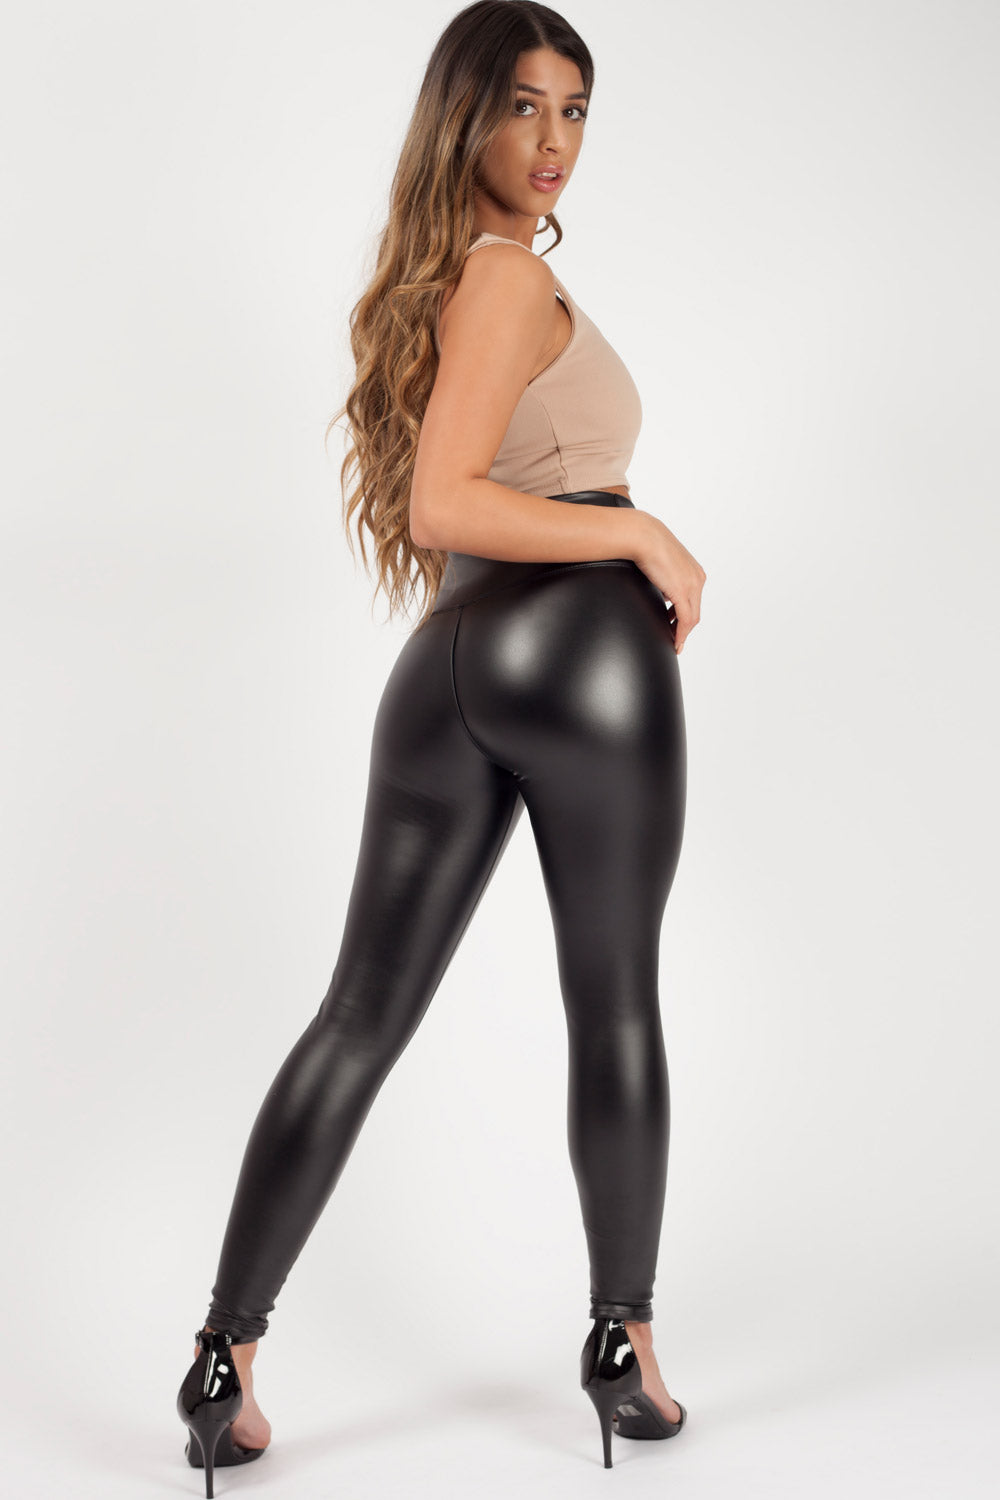 Black High Waist Leather look Leggings